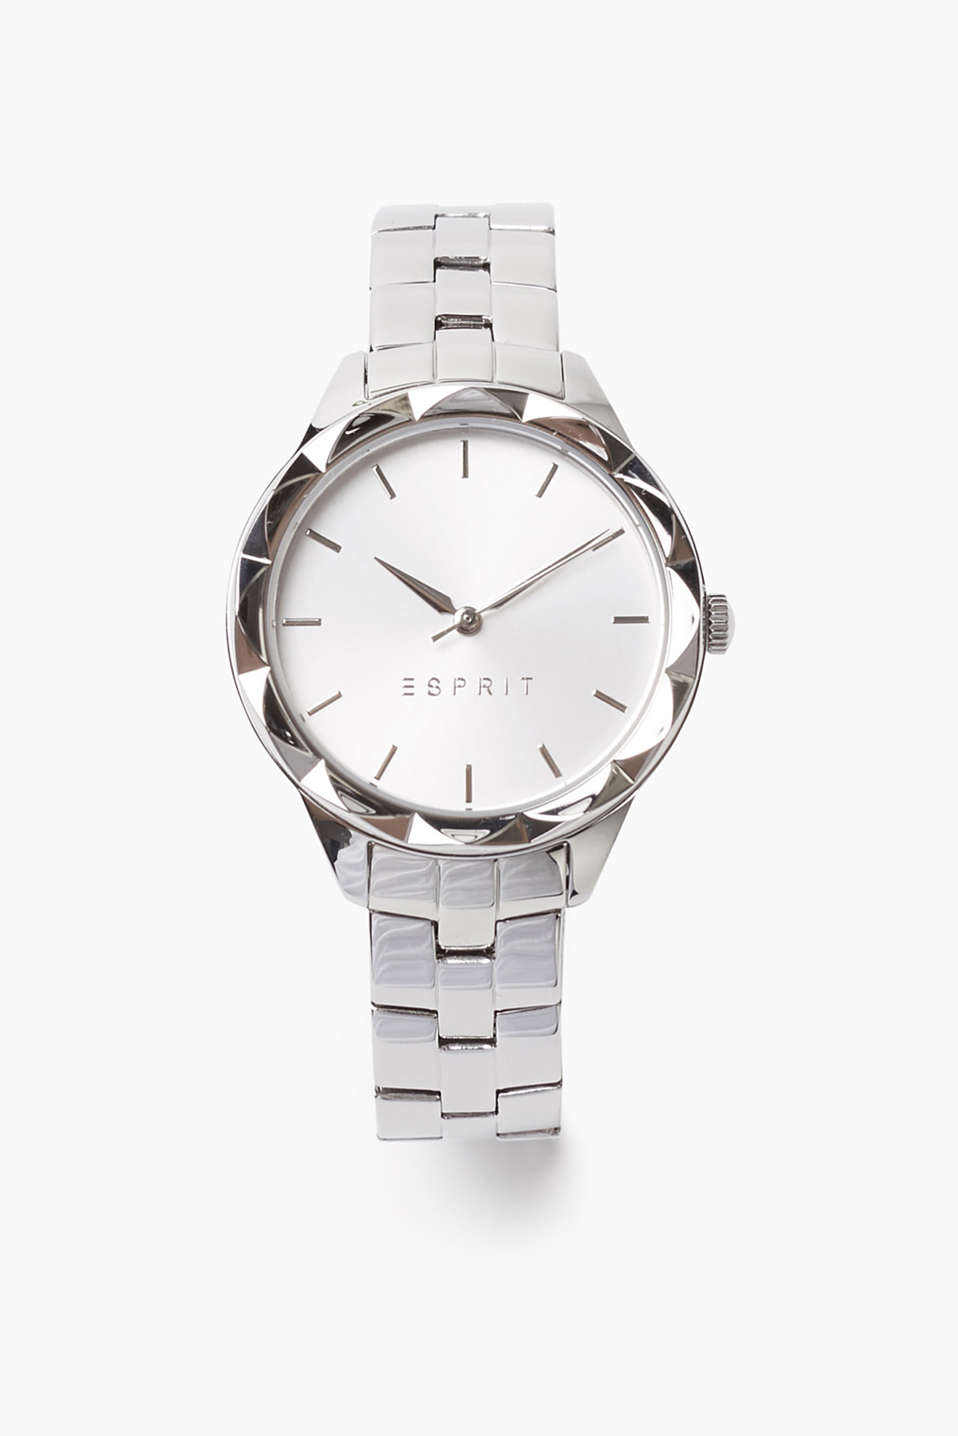 Esprit - Stainless-steel studs watch, metal bracelet